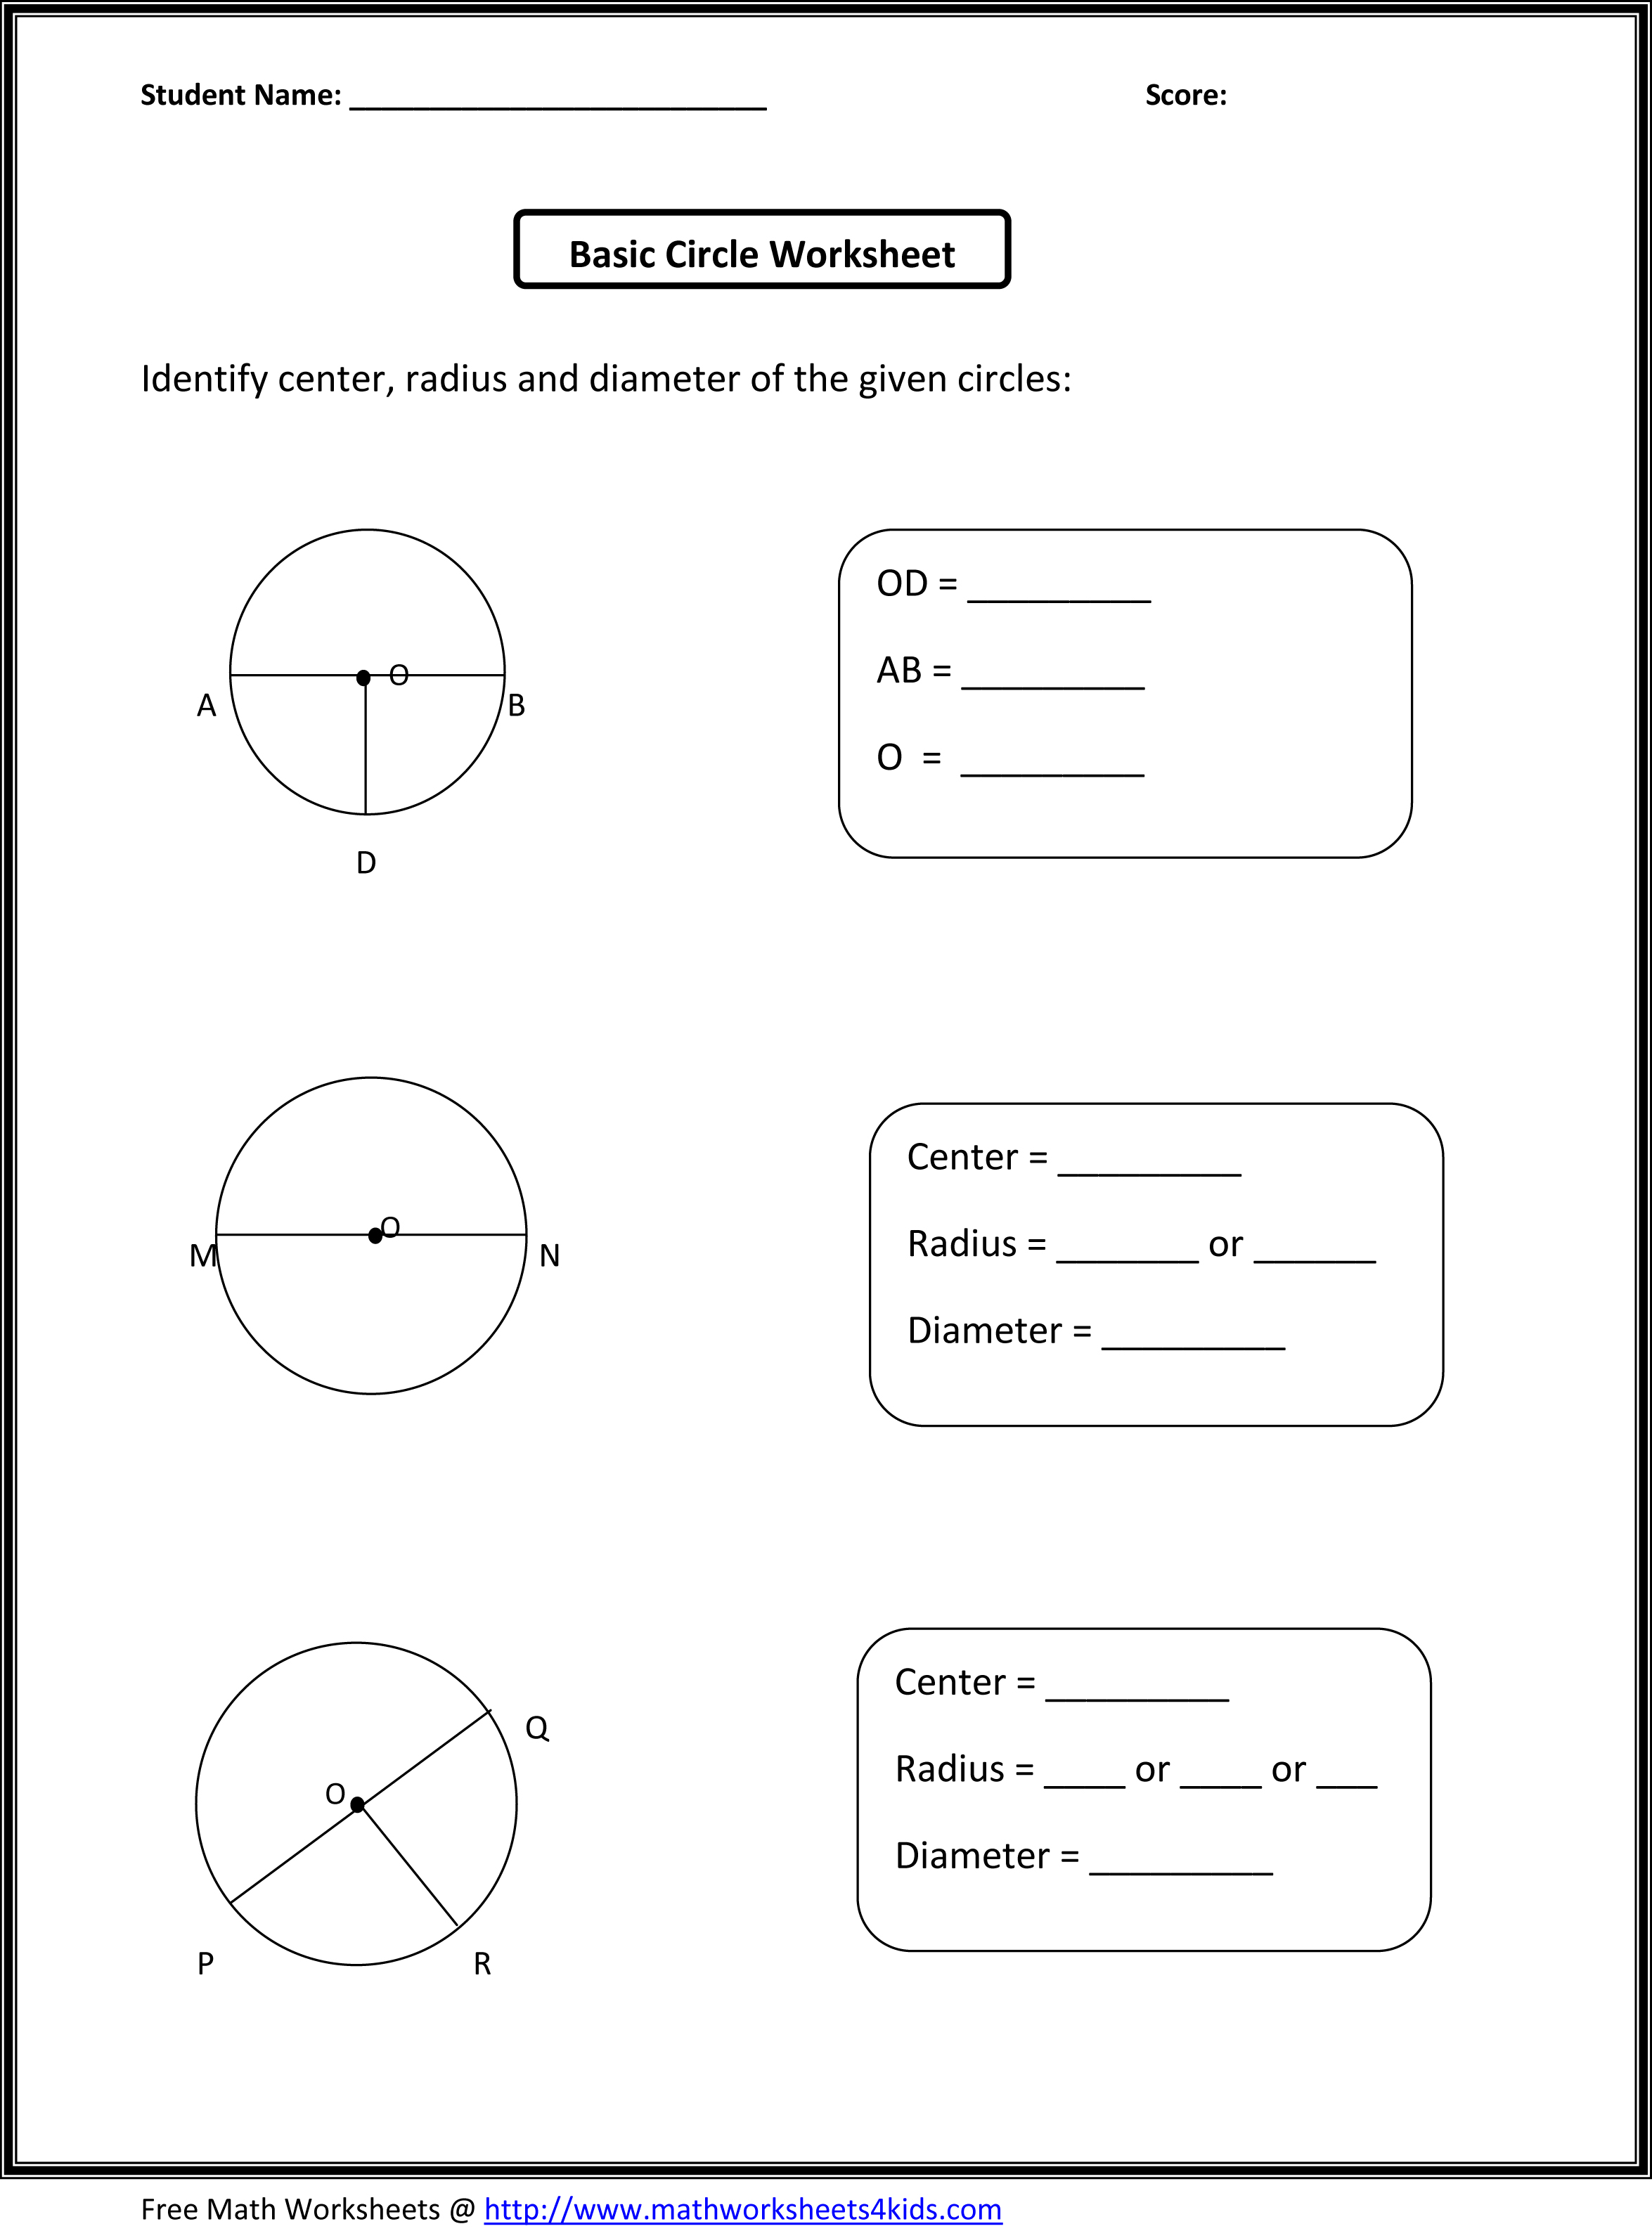 Math Problems For 3Rd Graders Worksheets – Math Problems for Third Graders Worksheets